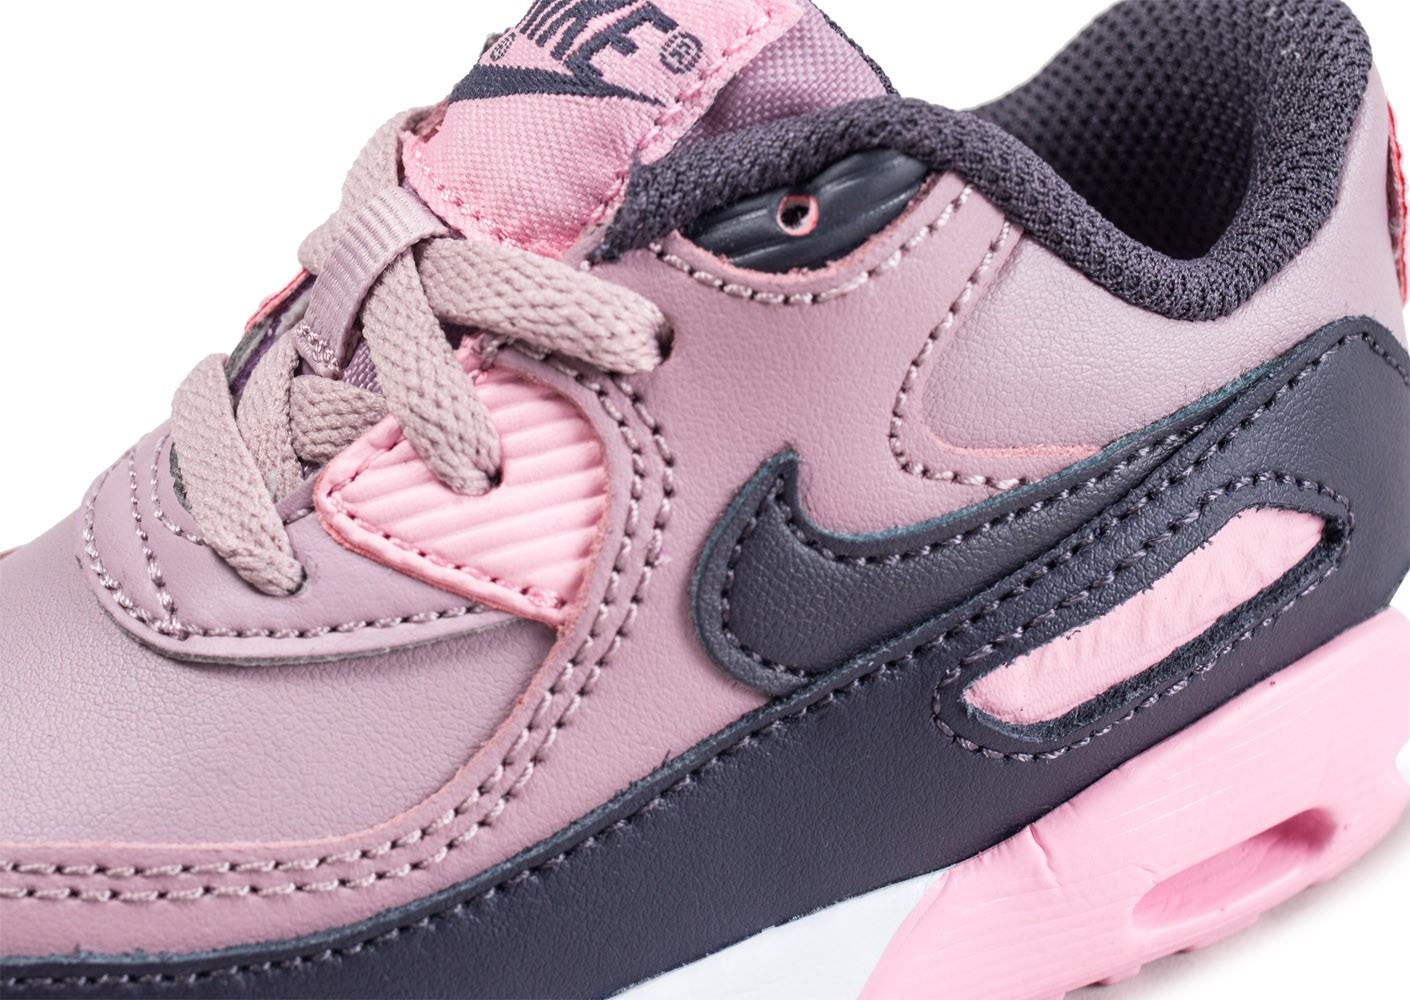 the latest 35672 3be38 ... Chaussures Nike Air Max 90 Leather rose bébé vue dessus